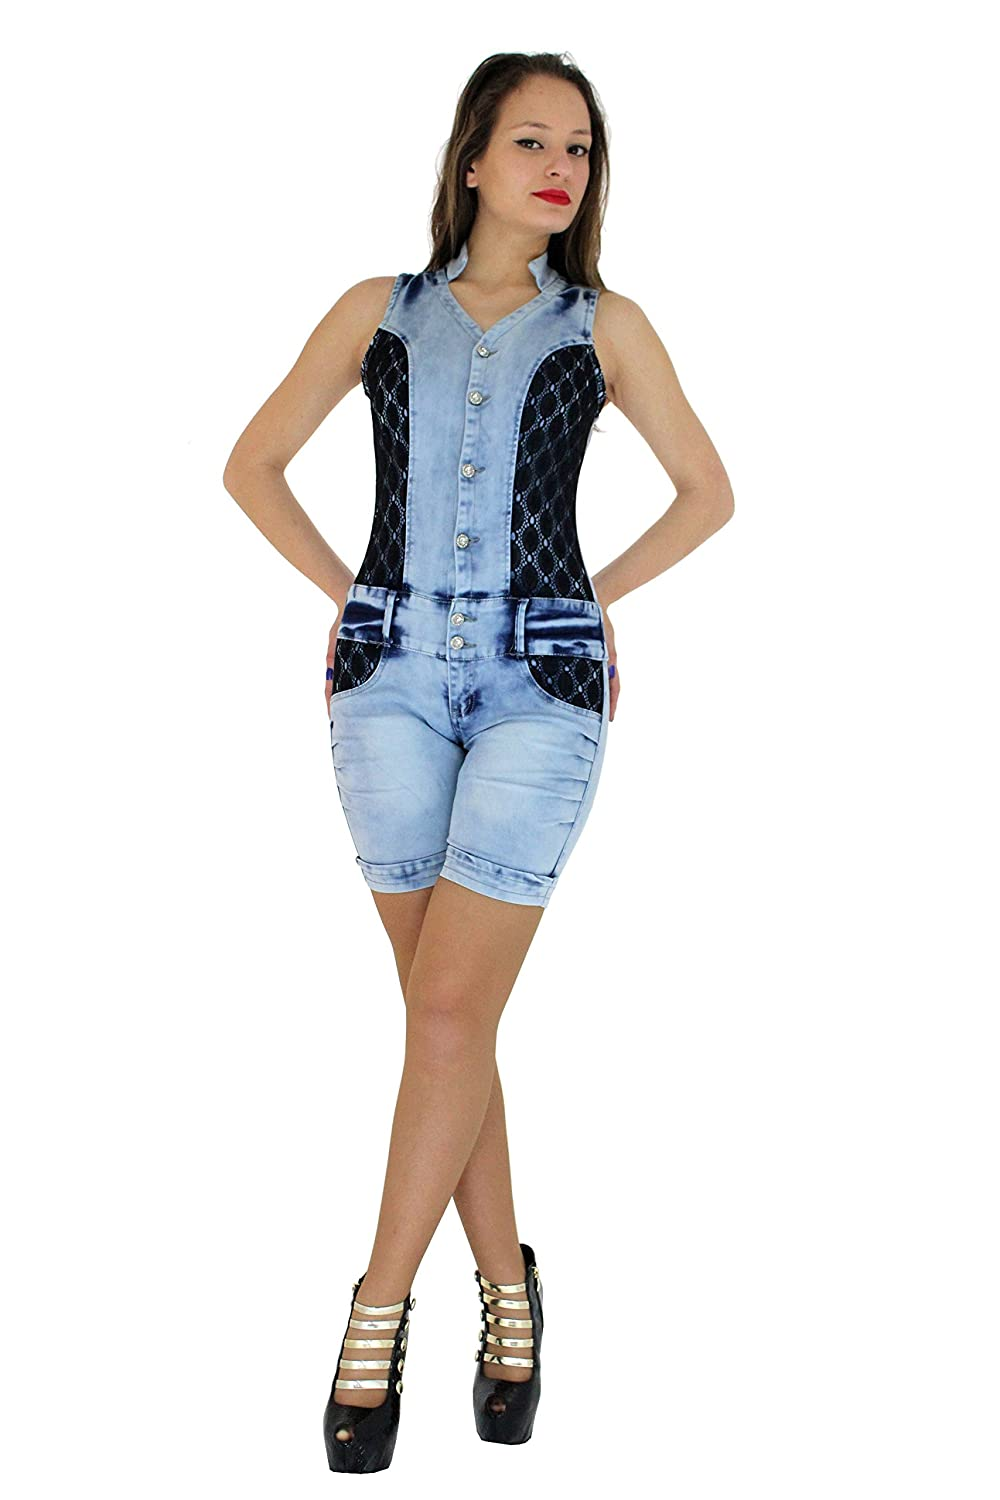 281d61030a1a HADABELLA Push Up (Pump Up) Figure Molding Denim Overall One Piece Short  Jumpsuit.: Amazon.co.uk: Clothing